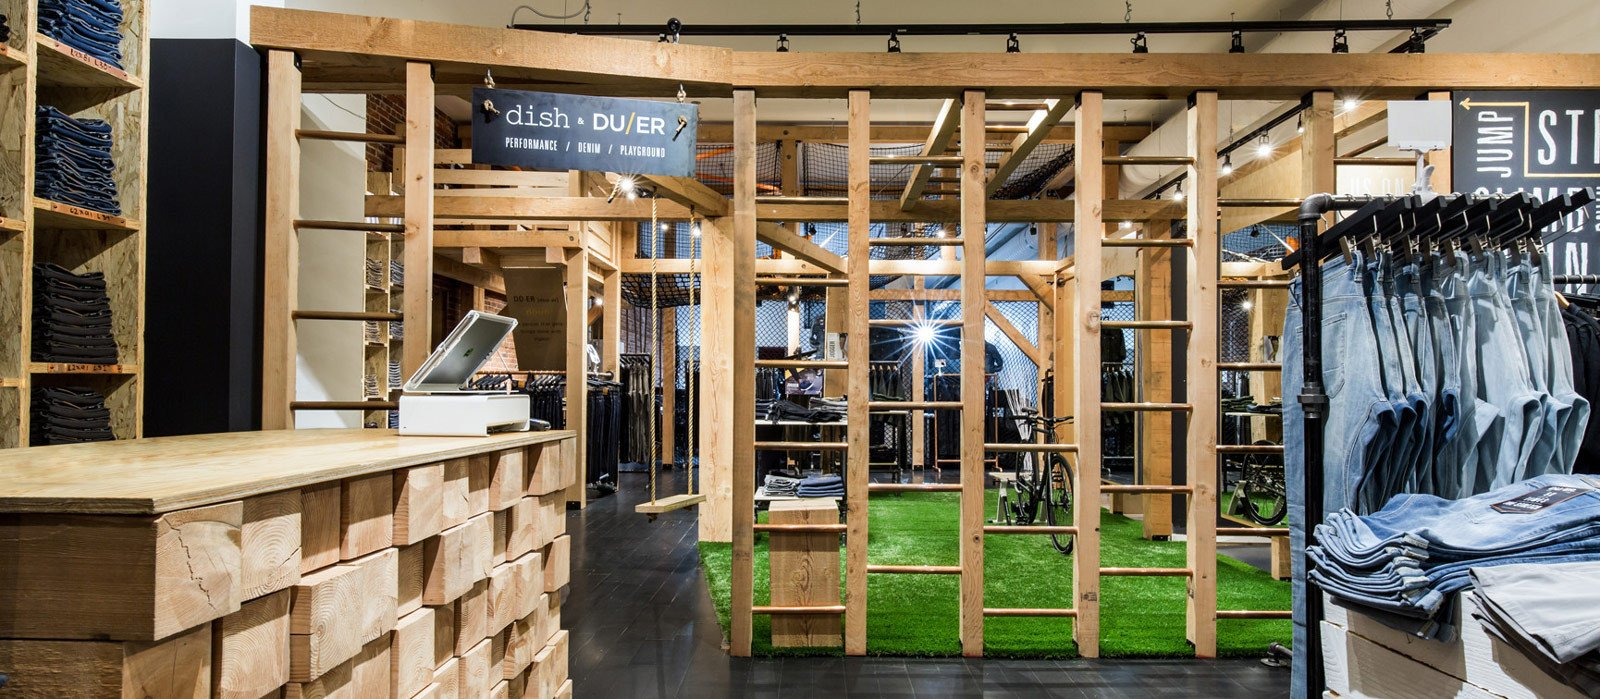 Peformance Denim Playground at Dish and Duer Flagship Store in Vancouver